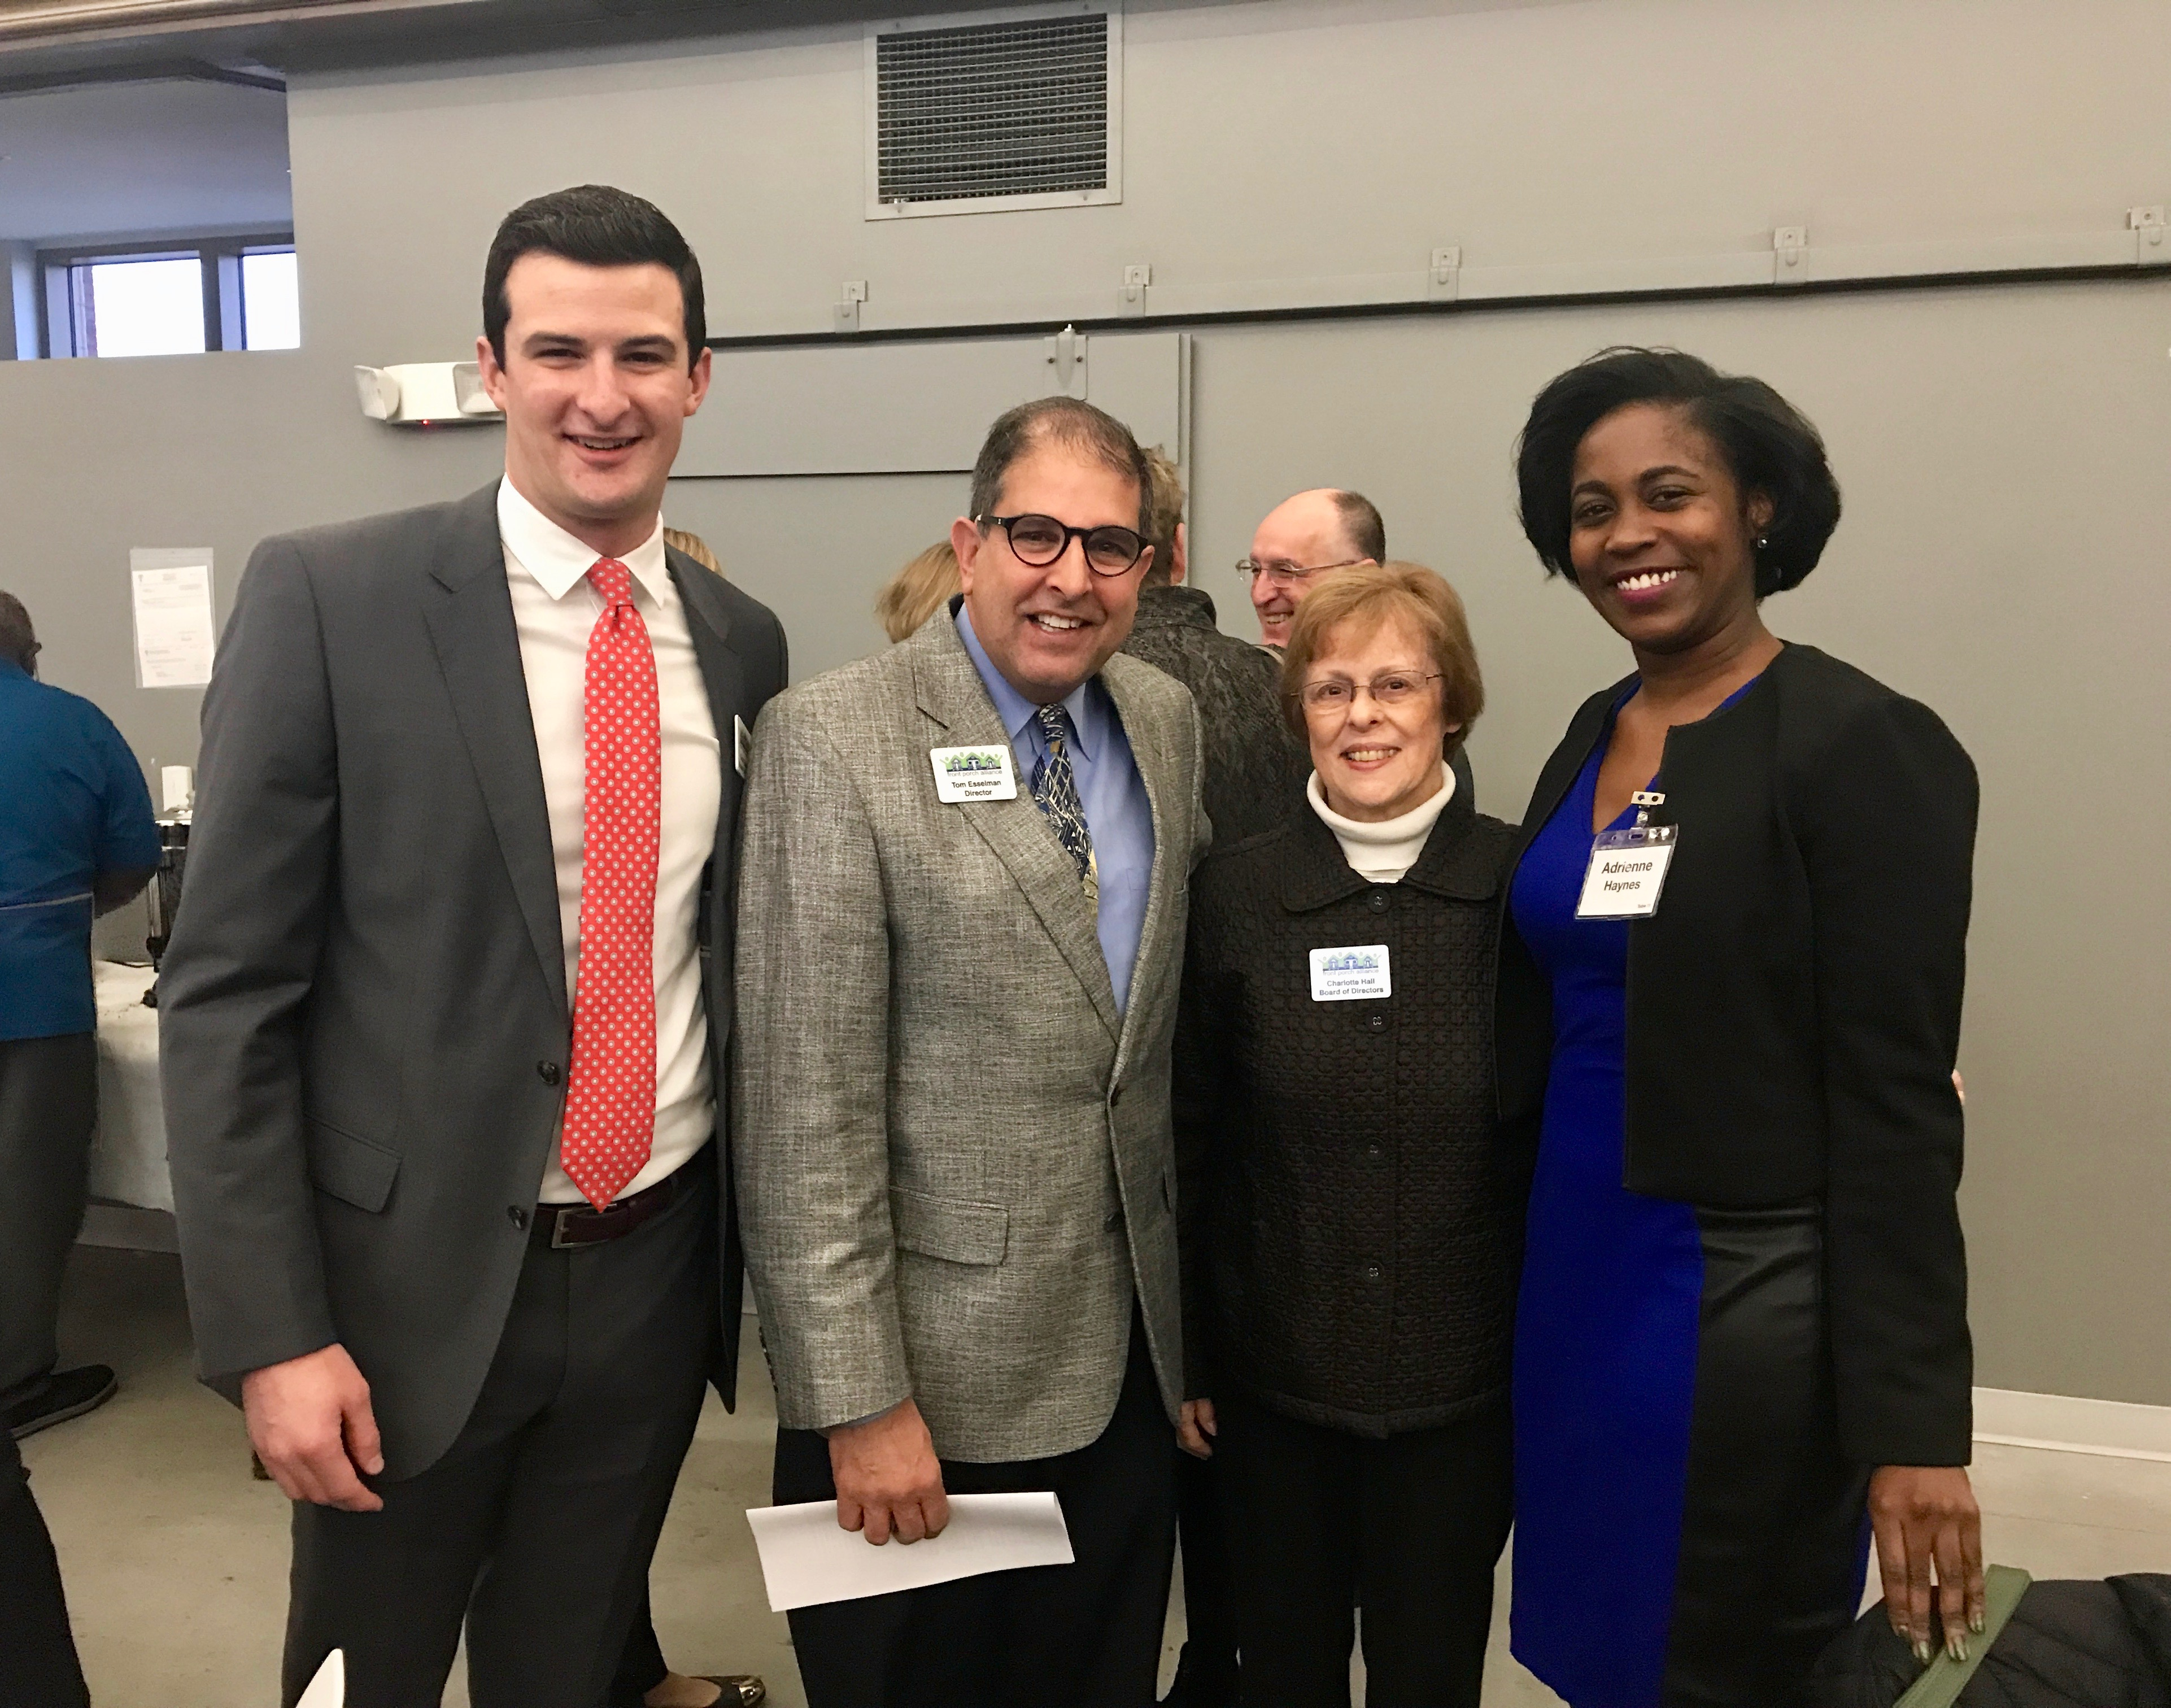 Scott Sturgeon, board member: Tom Esselman, director of Collaborative Leadership Team; Charlotte Hall, board member; Adrienne Haynes, Advisory board member, at the Rise and Shine Breakfast.